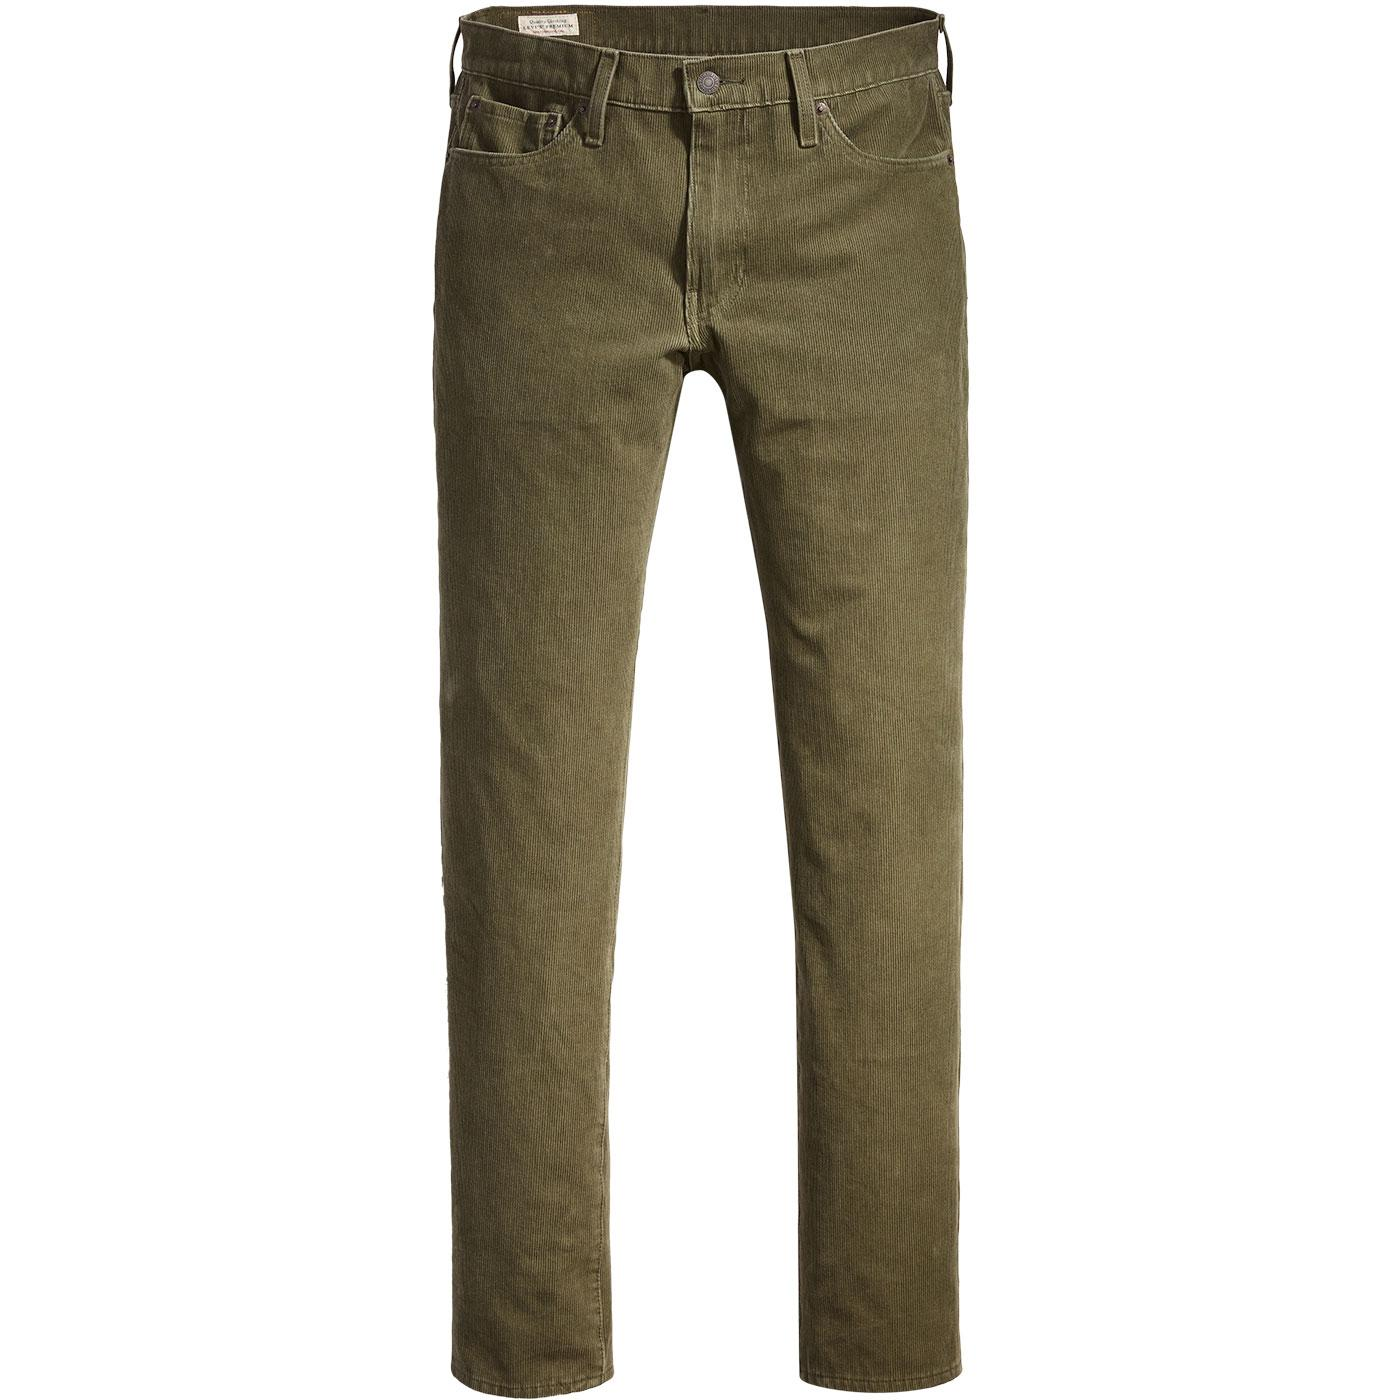 LEVI'S 511 Retro Mod Slim Cord Jeans (Olive Night)